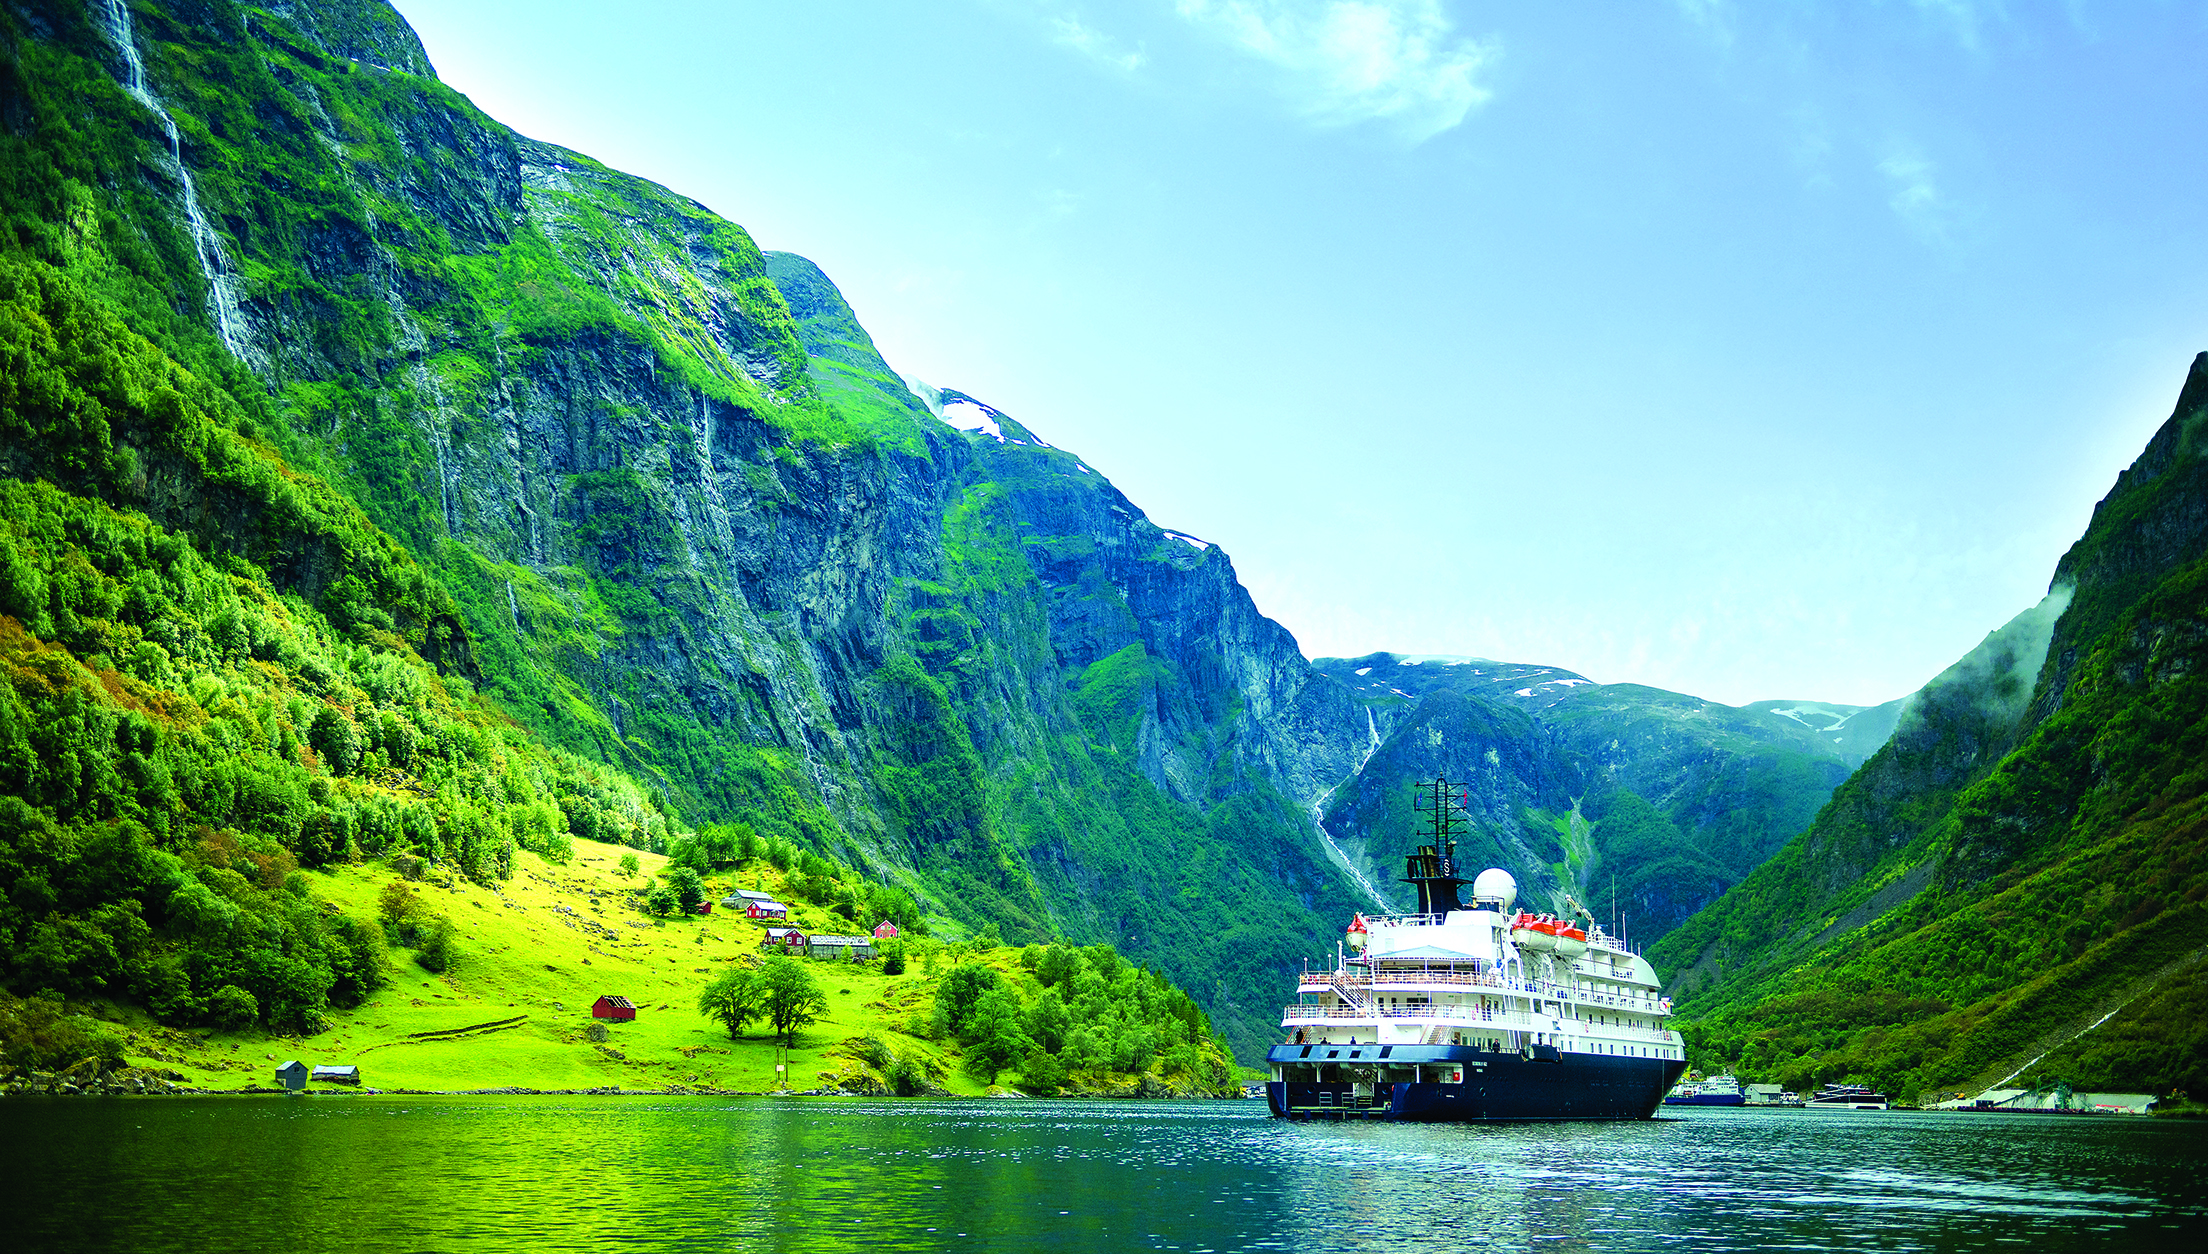 a-eu-norway-hebridean-sky-fjords-welcome_APT-Rushes-7T